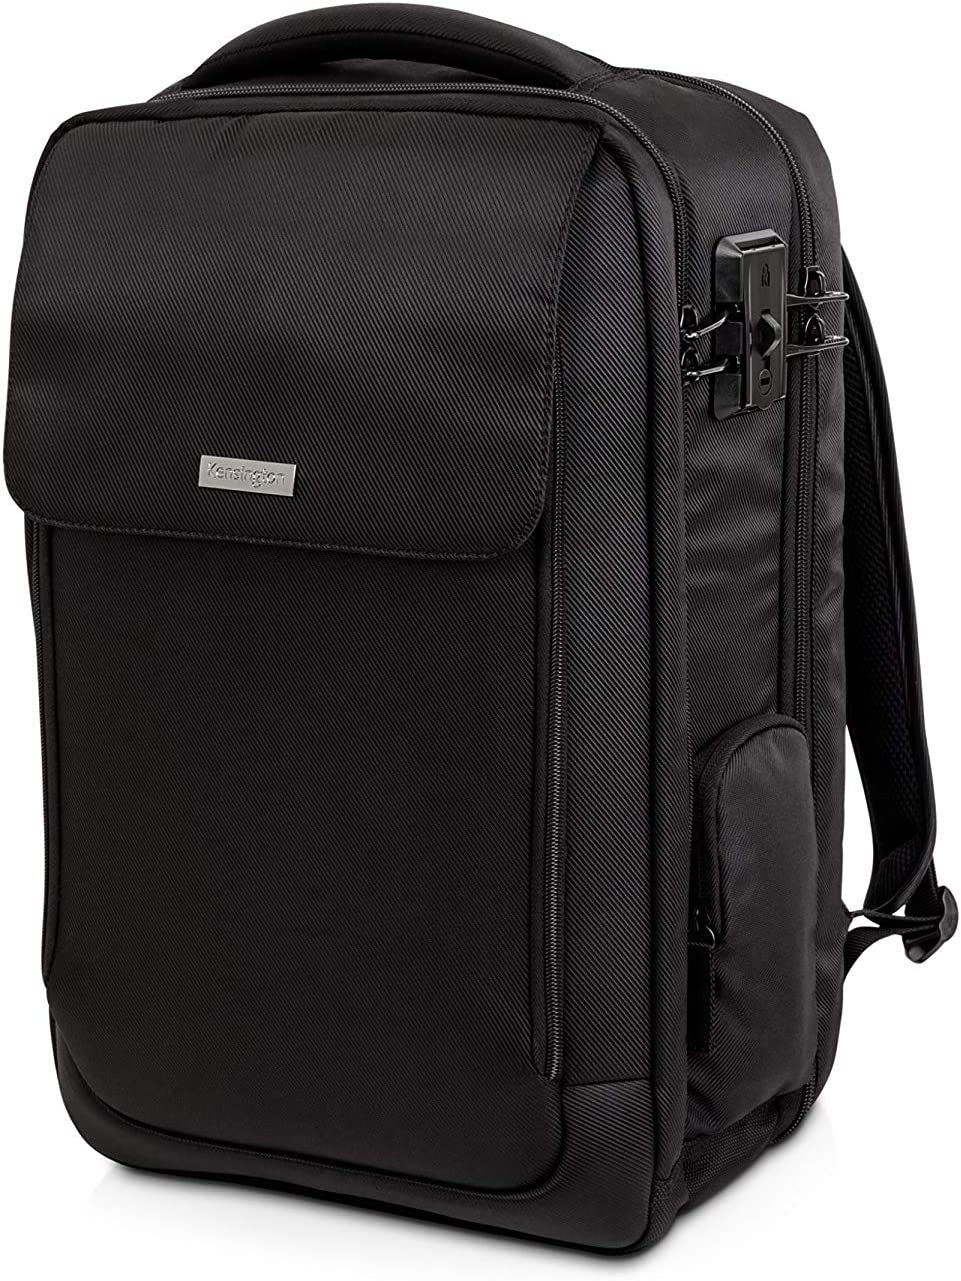 "Kensington SecureTrek 17"" Lockable Anti-Theft Laptop & Overnight Backpack (K98618WW)"